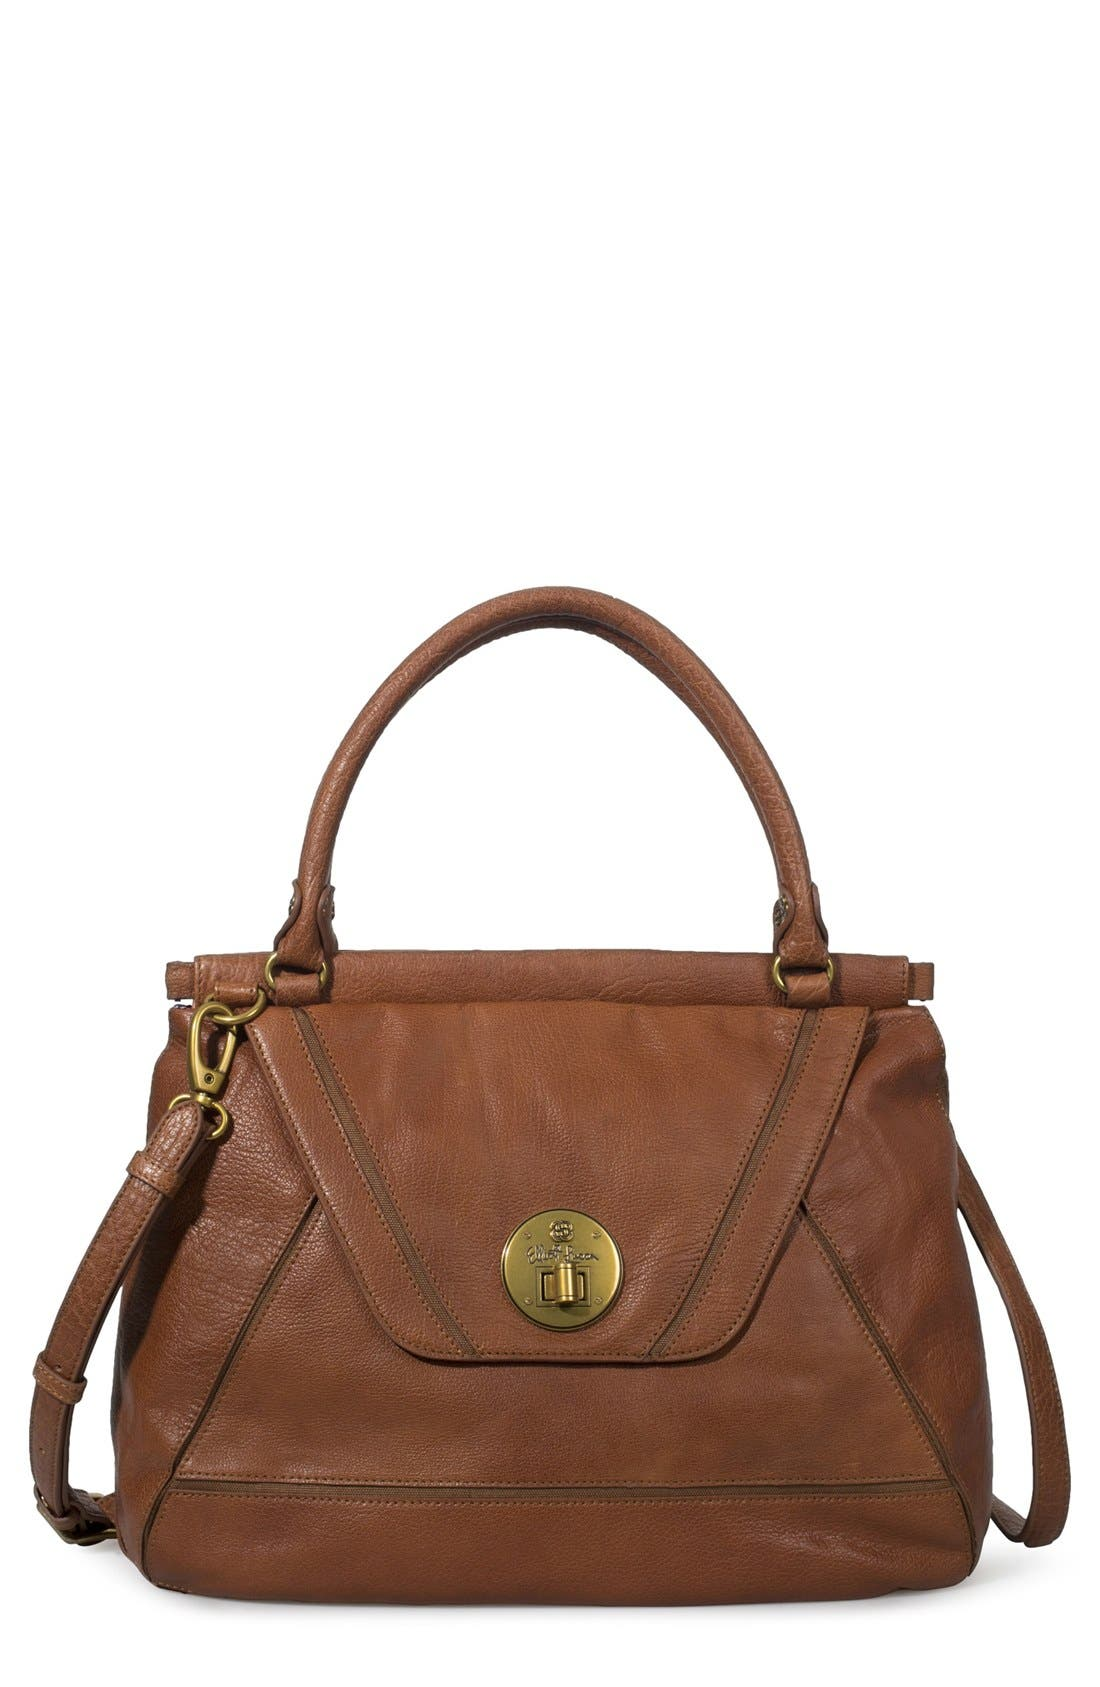 Main Image - Elliott Lucca 'Cordoba' Leather Satchel, Medium